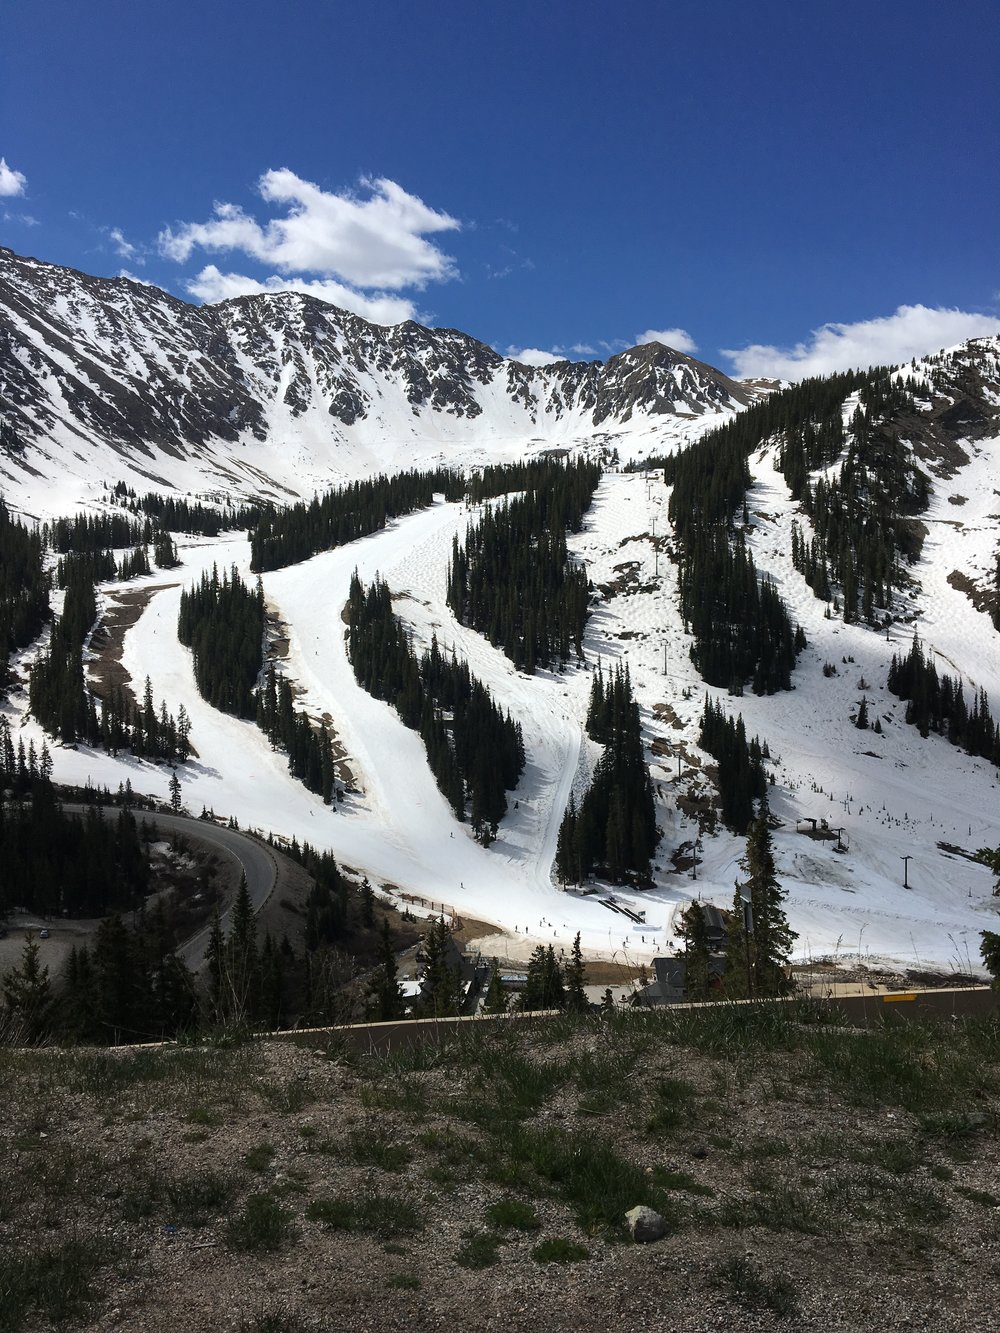 Looking down on A-Basin!